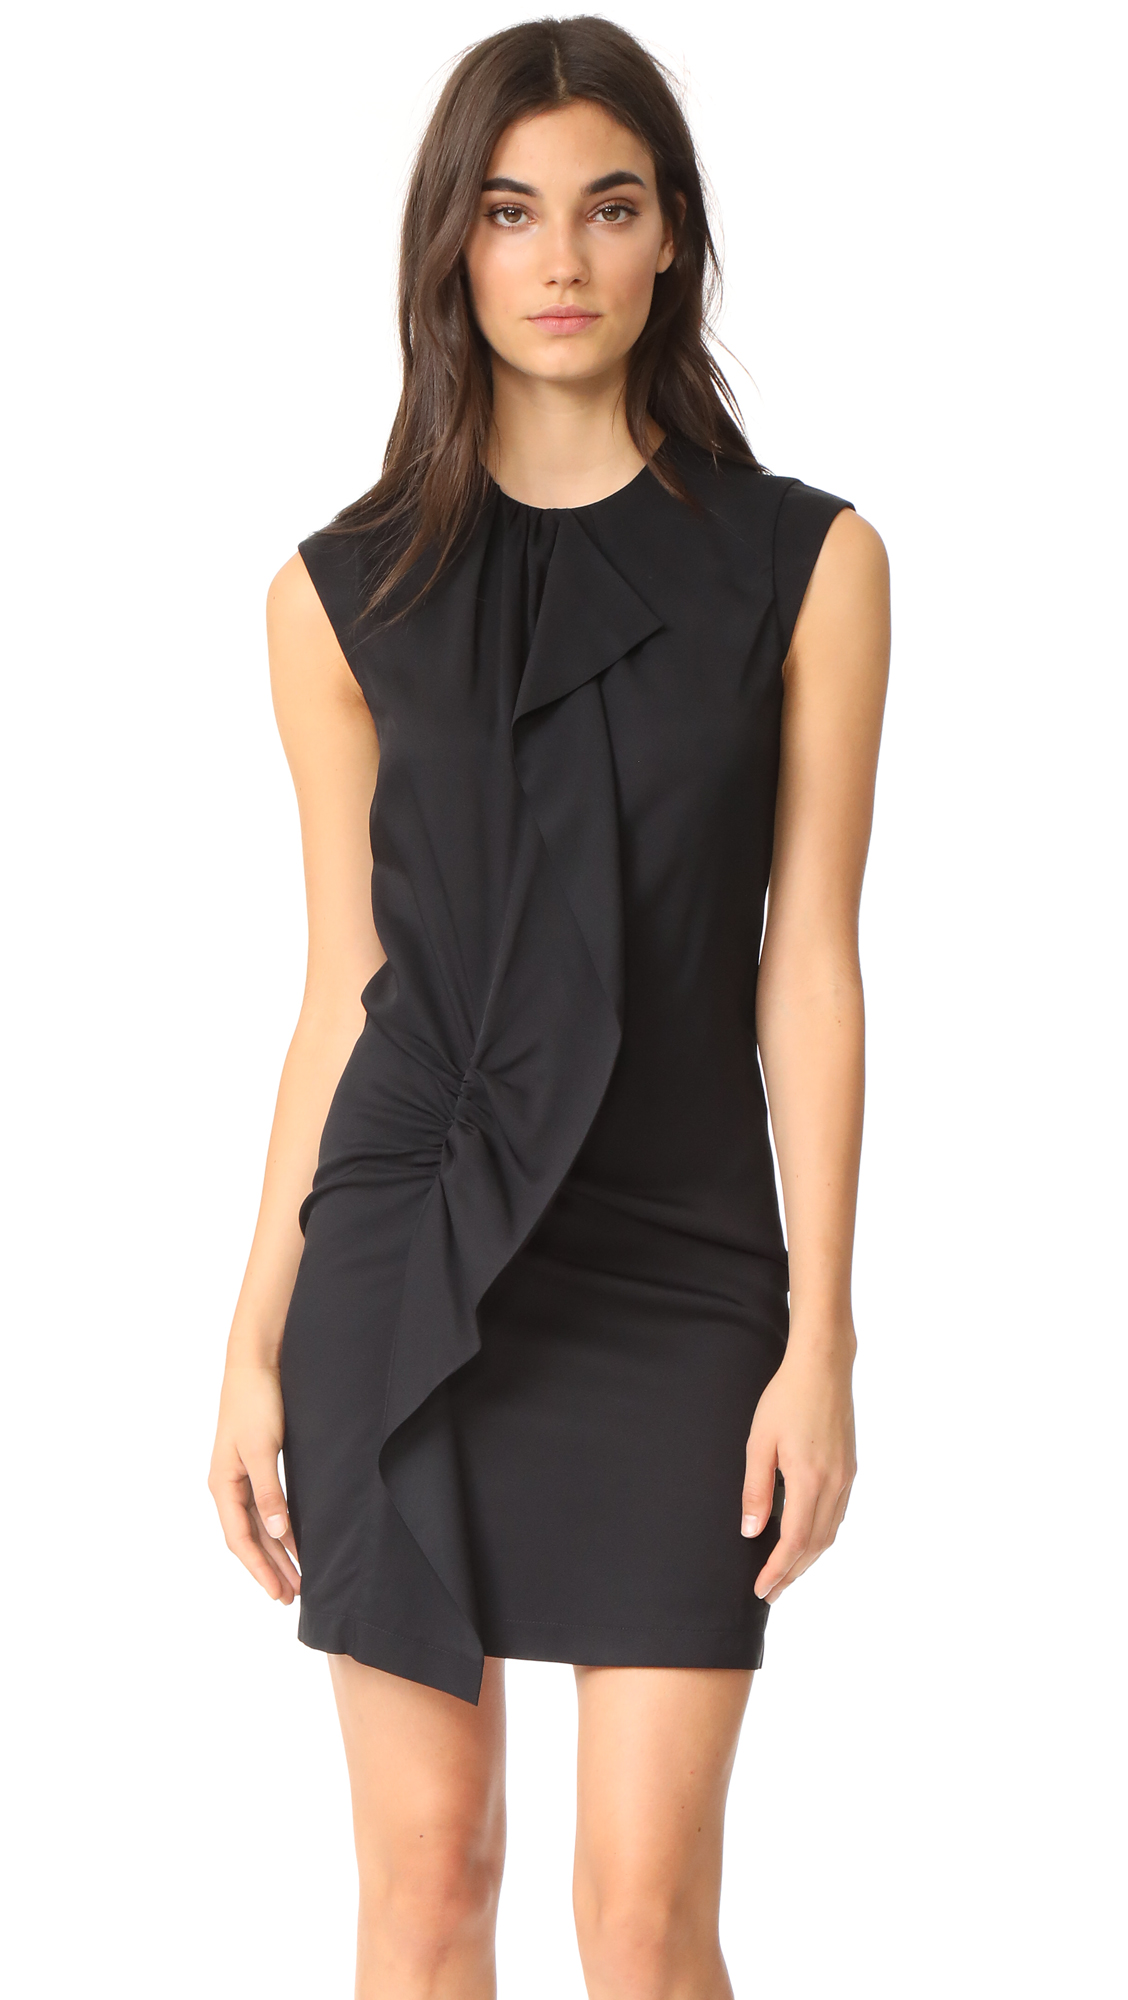 Carven Ruffle Dress